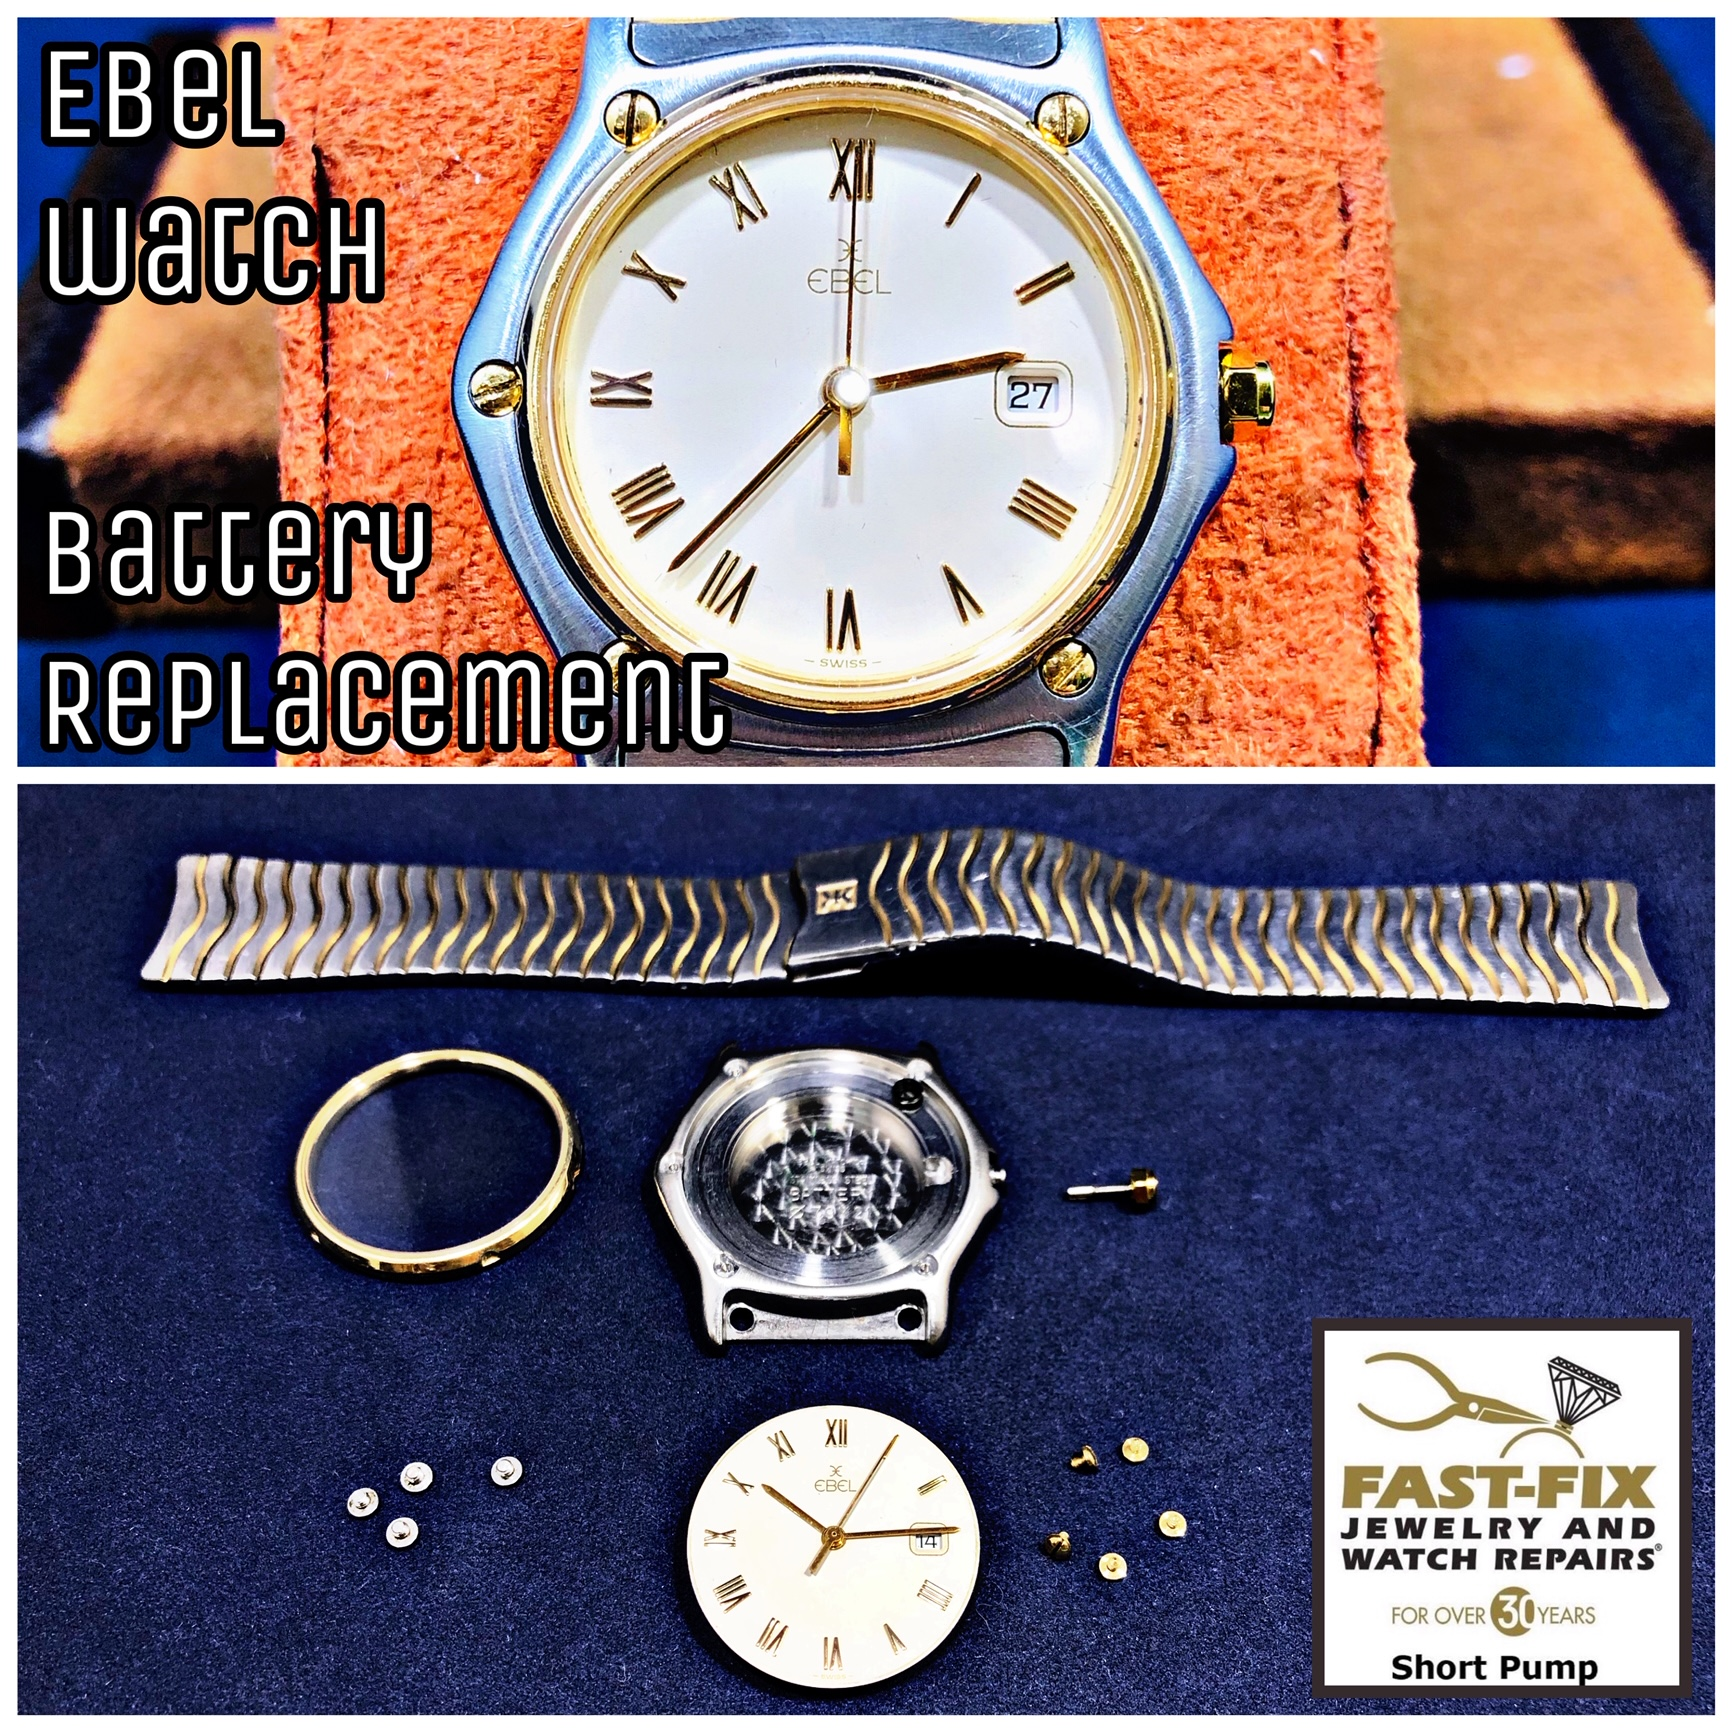 Ebel watch battery replacement